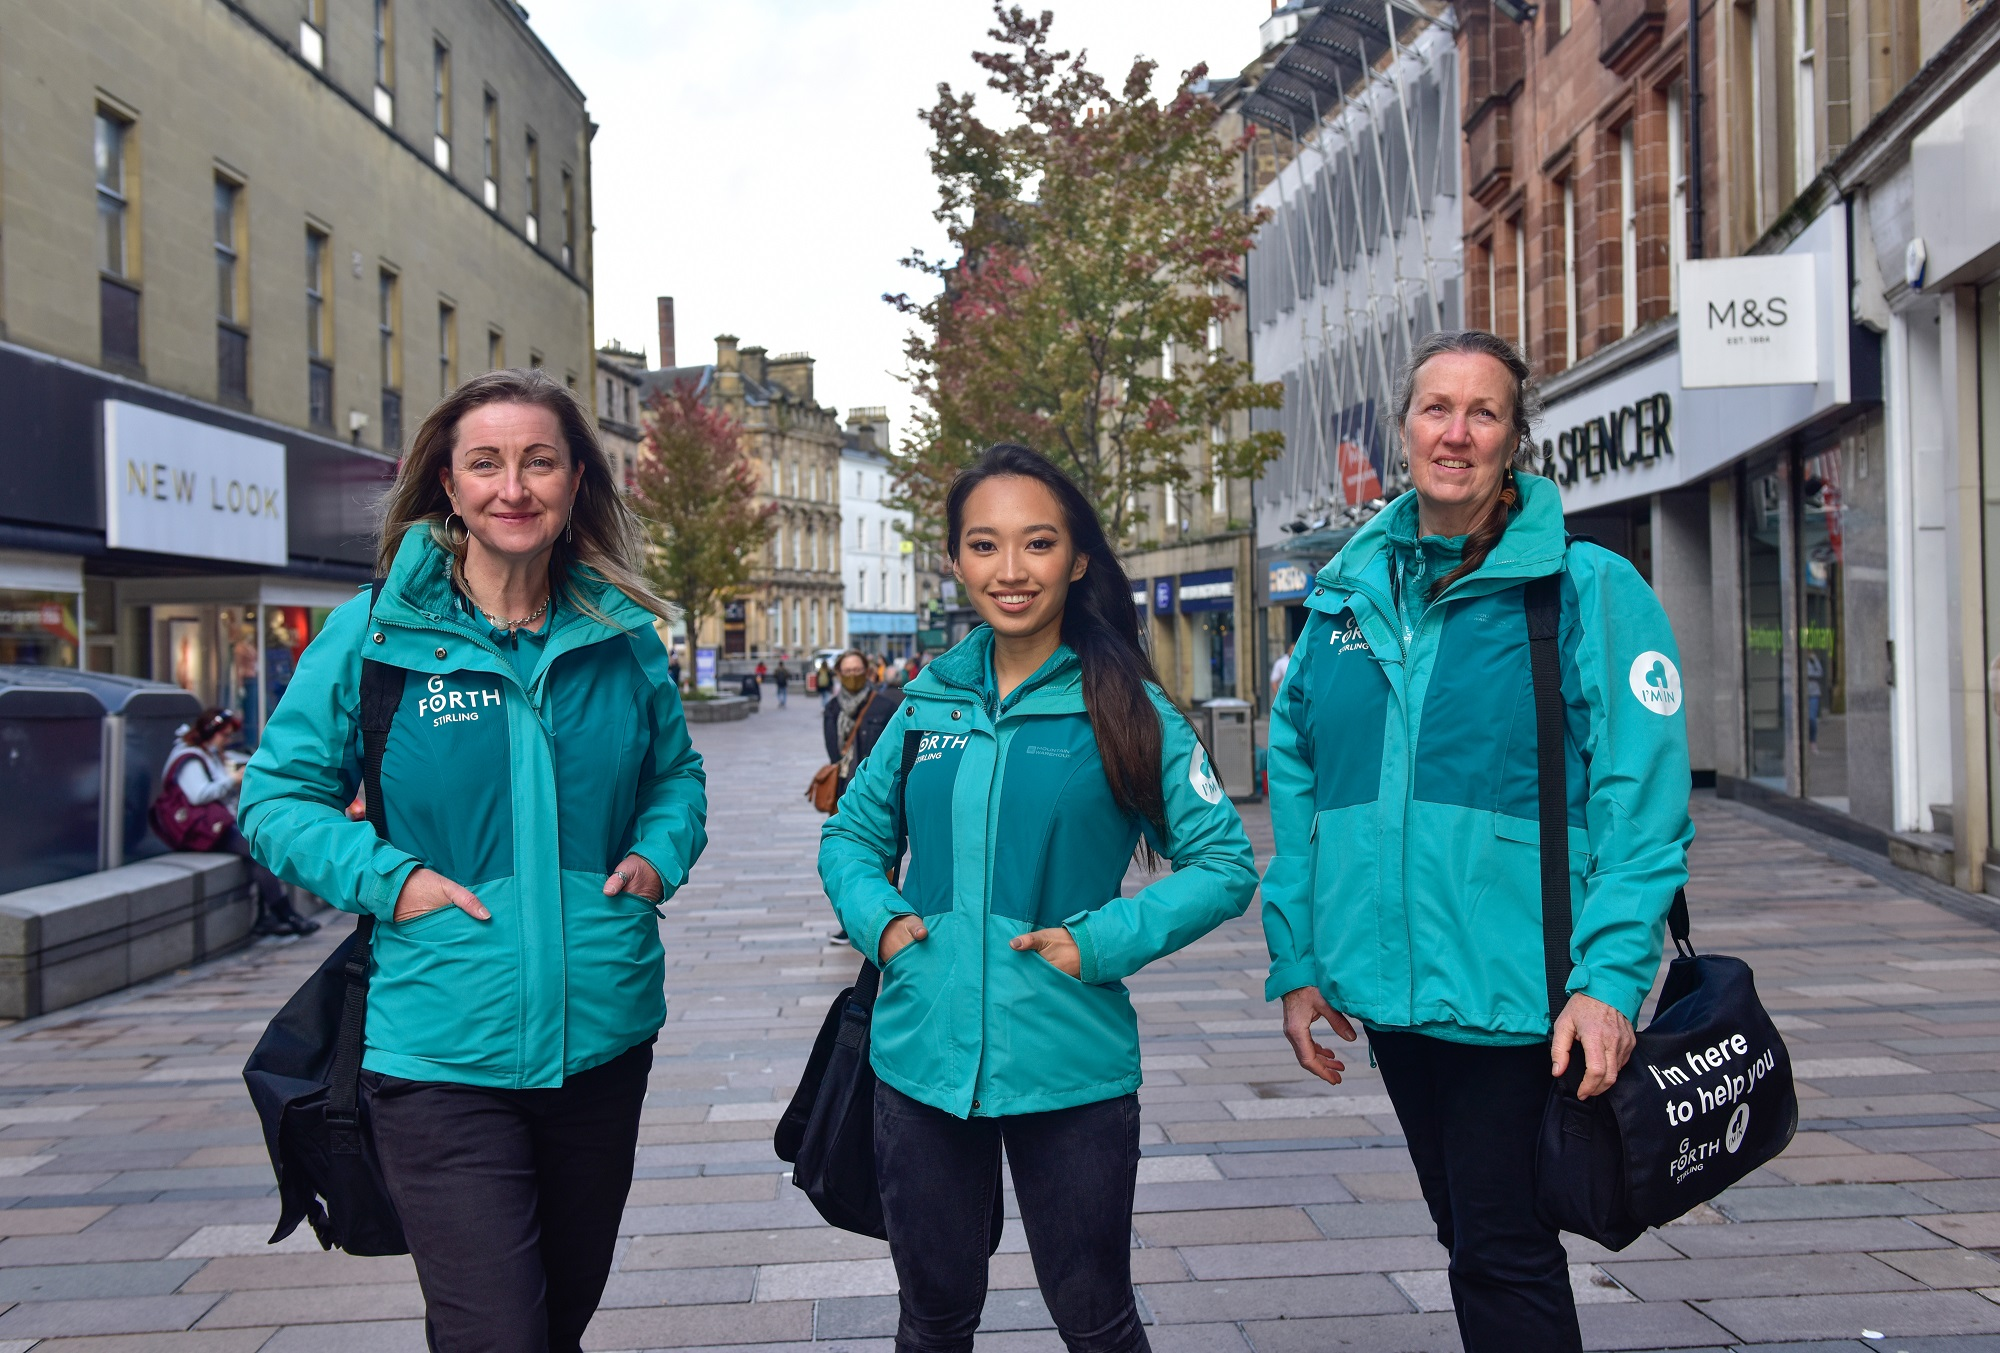 A team of Ambassadors has taken to the streets of Stirling to provide a warm and informed welcome to visitors and promote the city centre.  The scheme, launched by Go Forth Stirling BID, sees Ambassadors patrolling the city to liaise with business owners and provide information and advice to visitors, residents and workers.